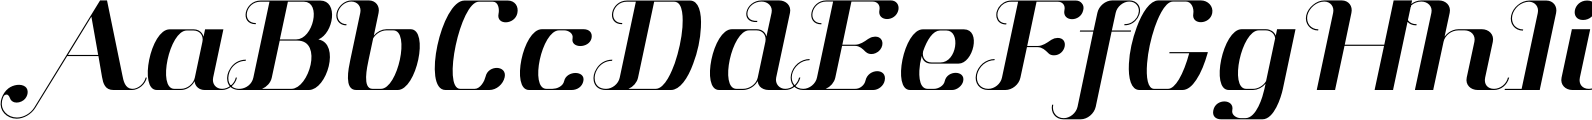 Aston Normal Italic